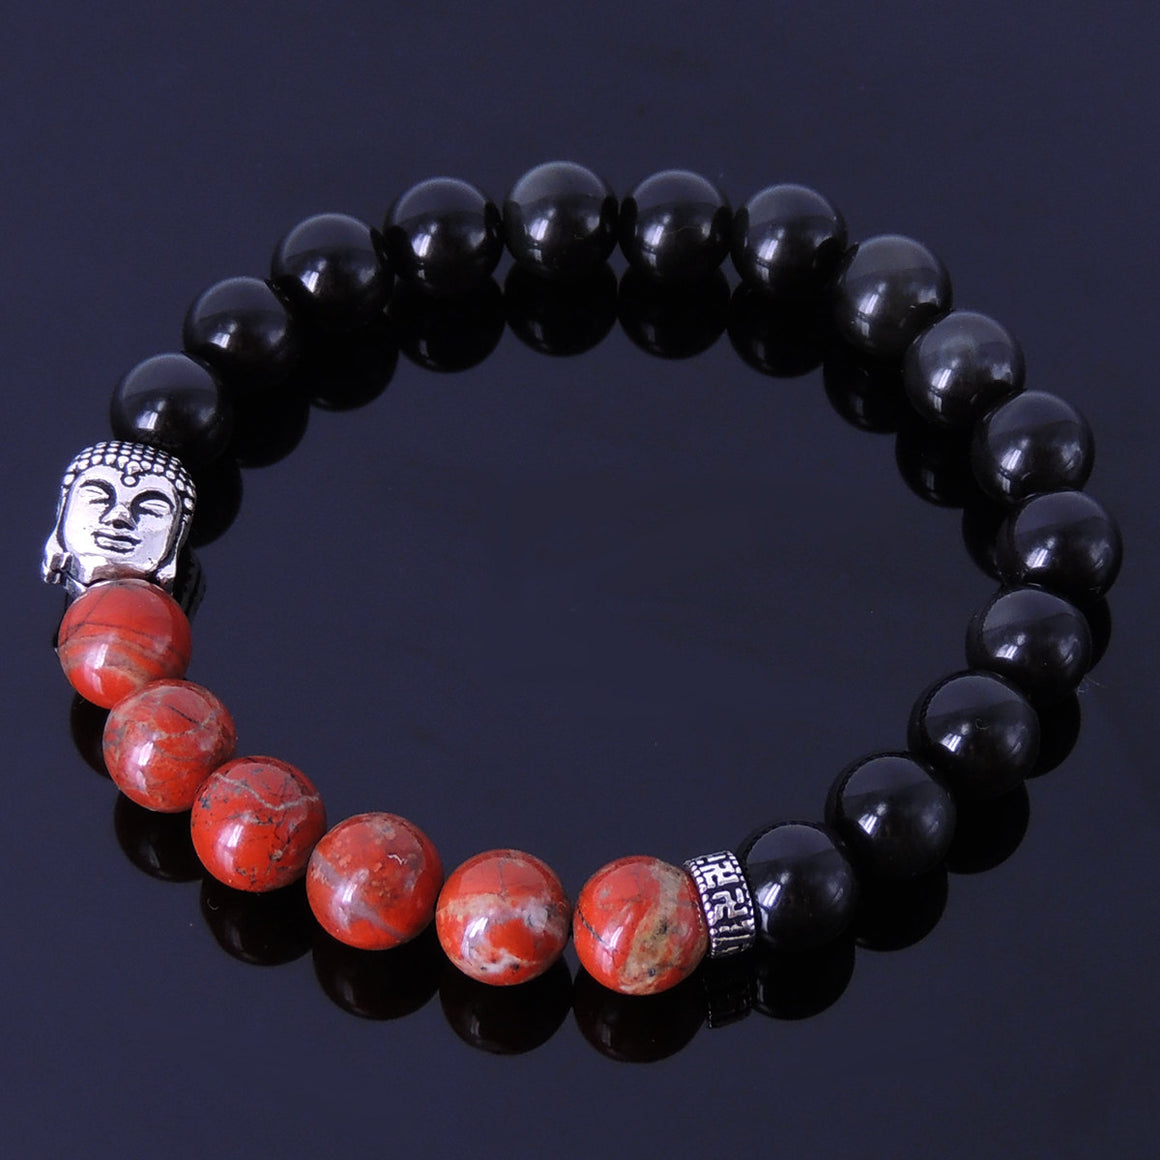 8mm Red Jasper Stone & Rainbow Black Obsidian Healing Gemstone Bracelet with S925 Sterling Silver Sakyamuni Buddha & OM Meditation Spacer Bead - Handmade by Gem & Silver BR194